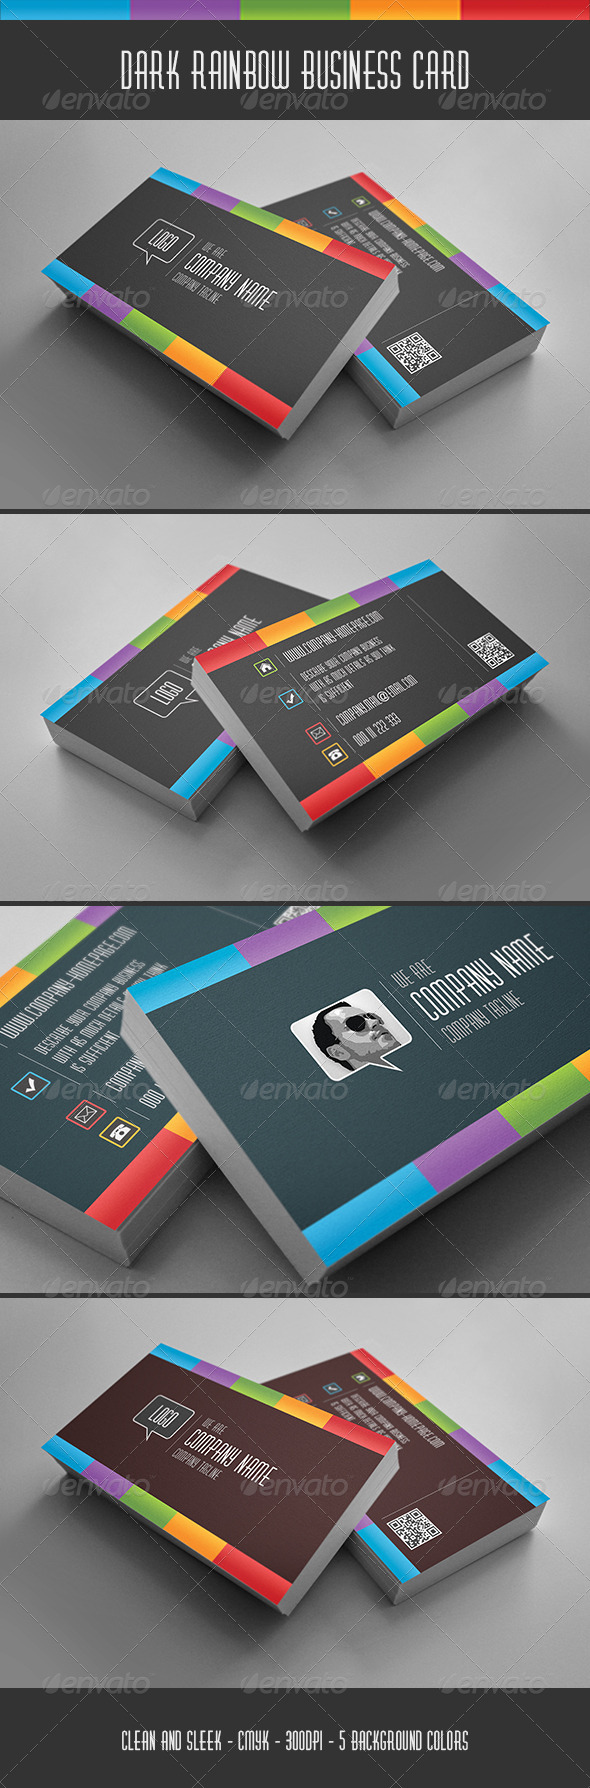 Dark Rainbow Business Card - Corporate Business Cards